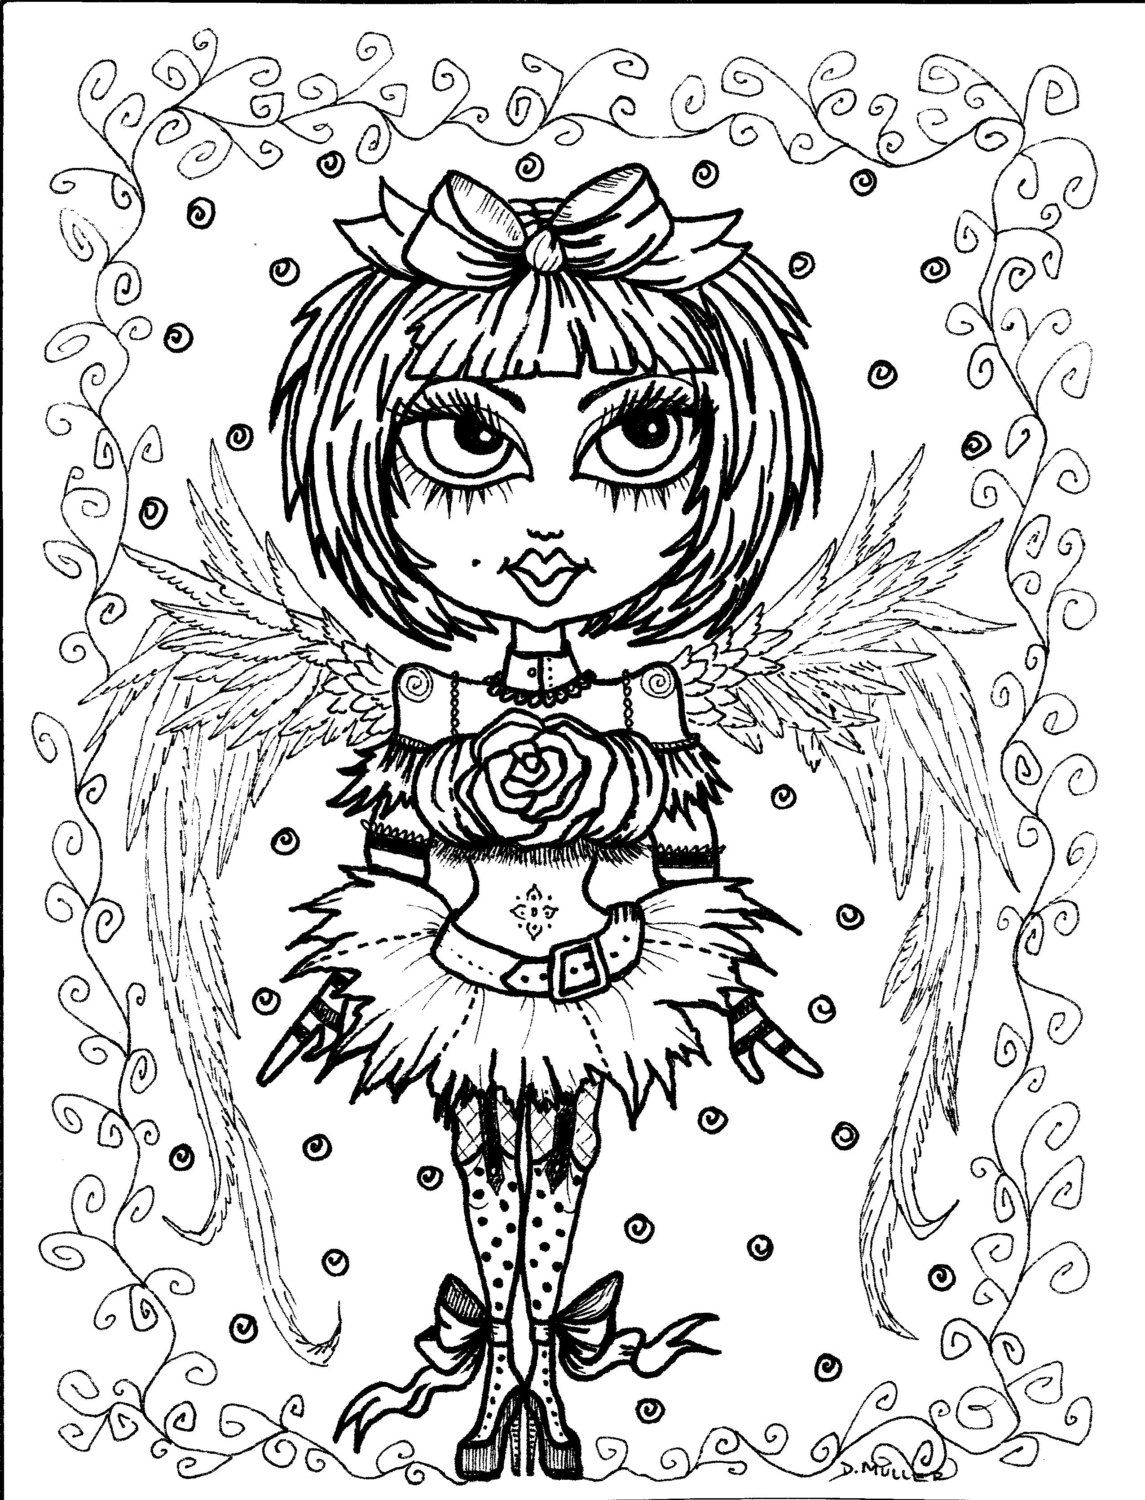 Coloring book pages angels - Instant Download 5 Coloring Pages Gothic Angels Color Book Art Digital